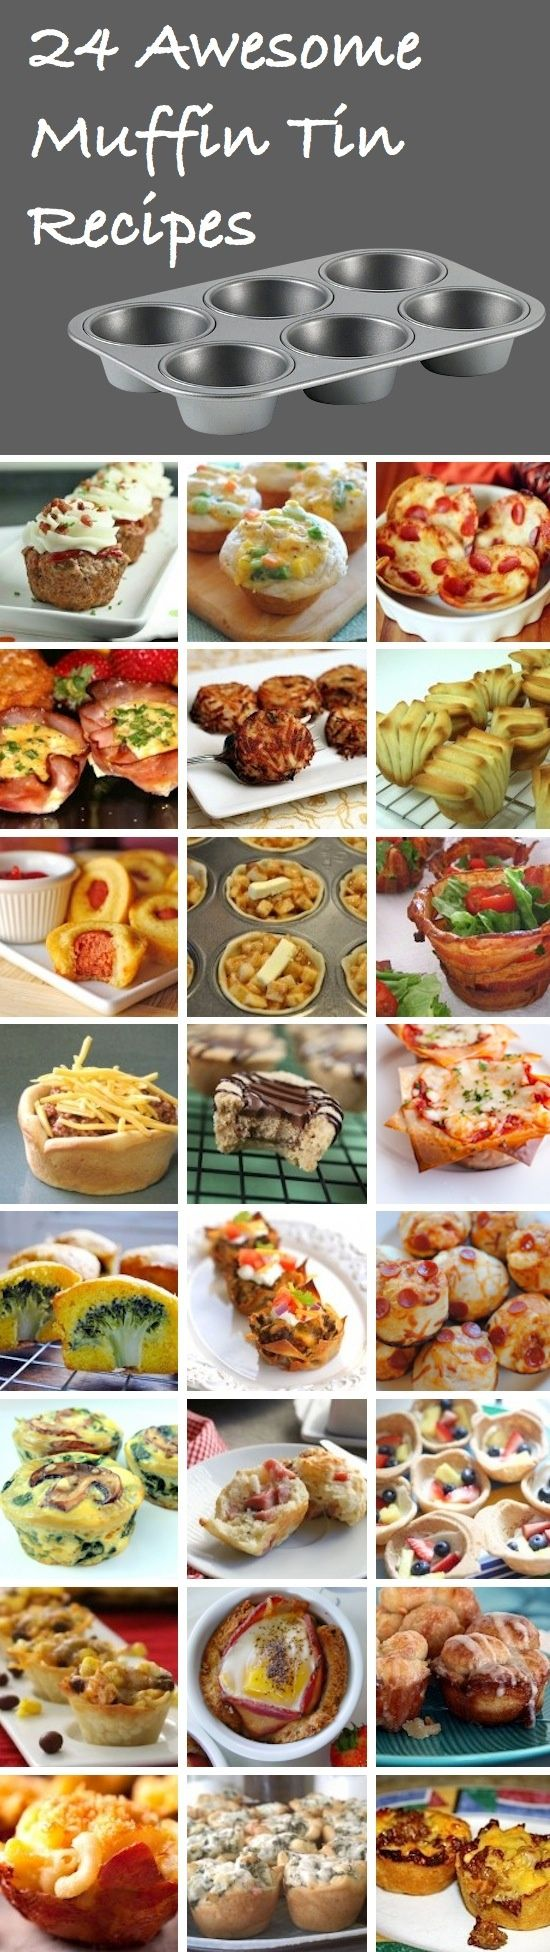 muffin tin recipes! Have I already pinned this??